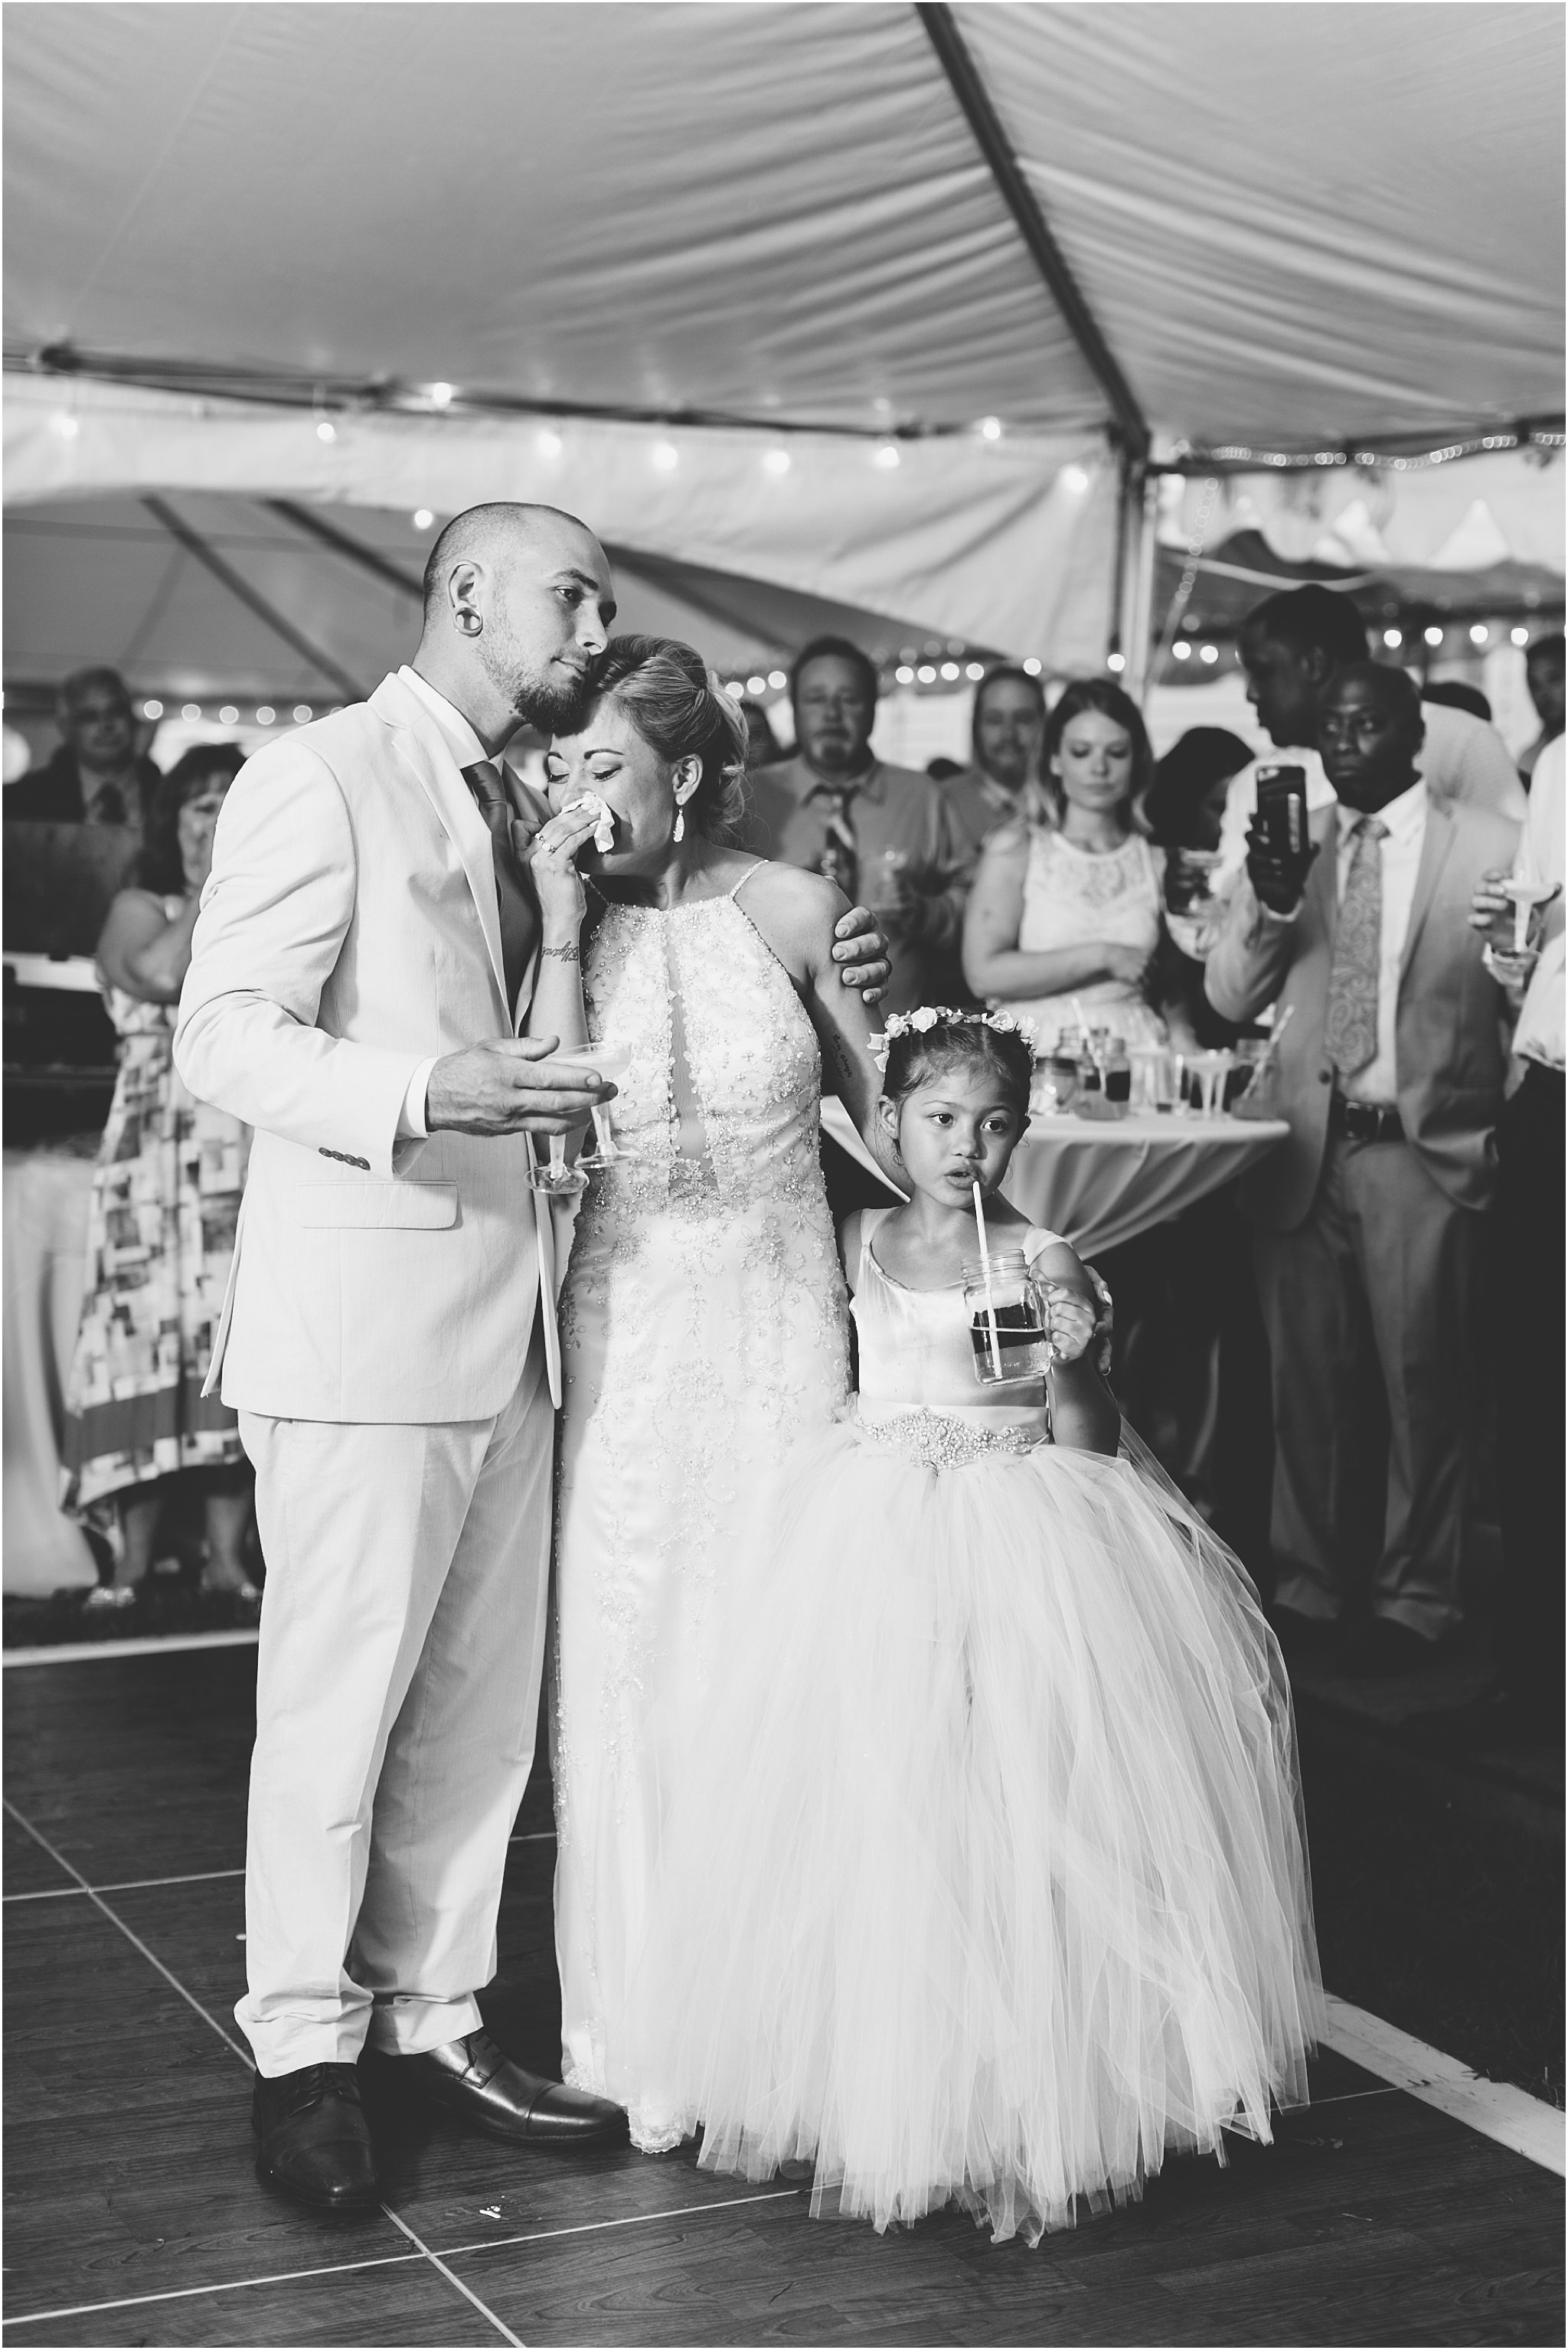 jessica_ryan_photography_virginia_virginiabeachweddingphotographer_studioIdo_backyardwedding_waterfrontwedding_1720